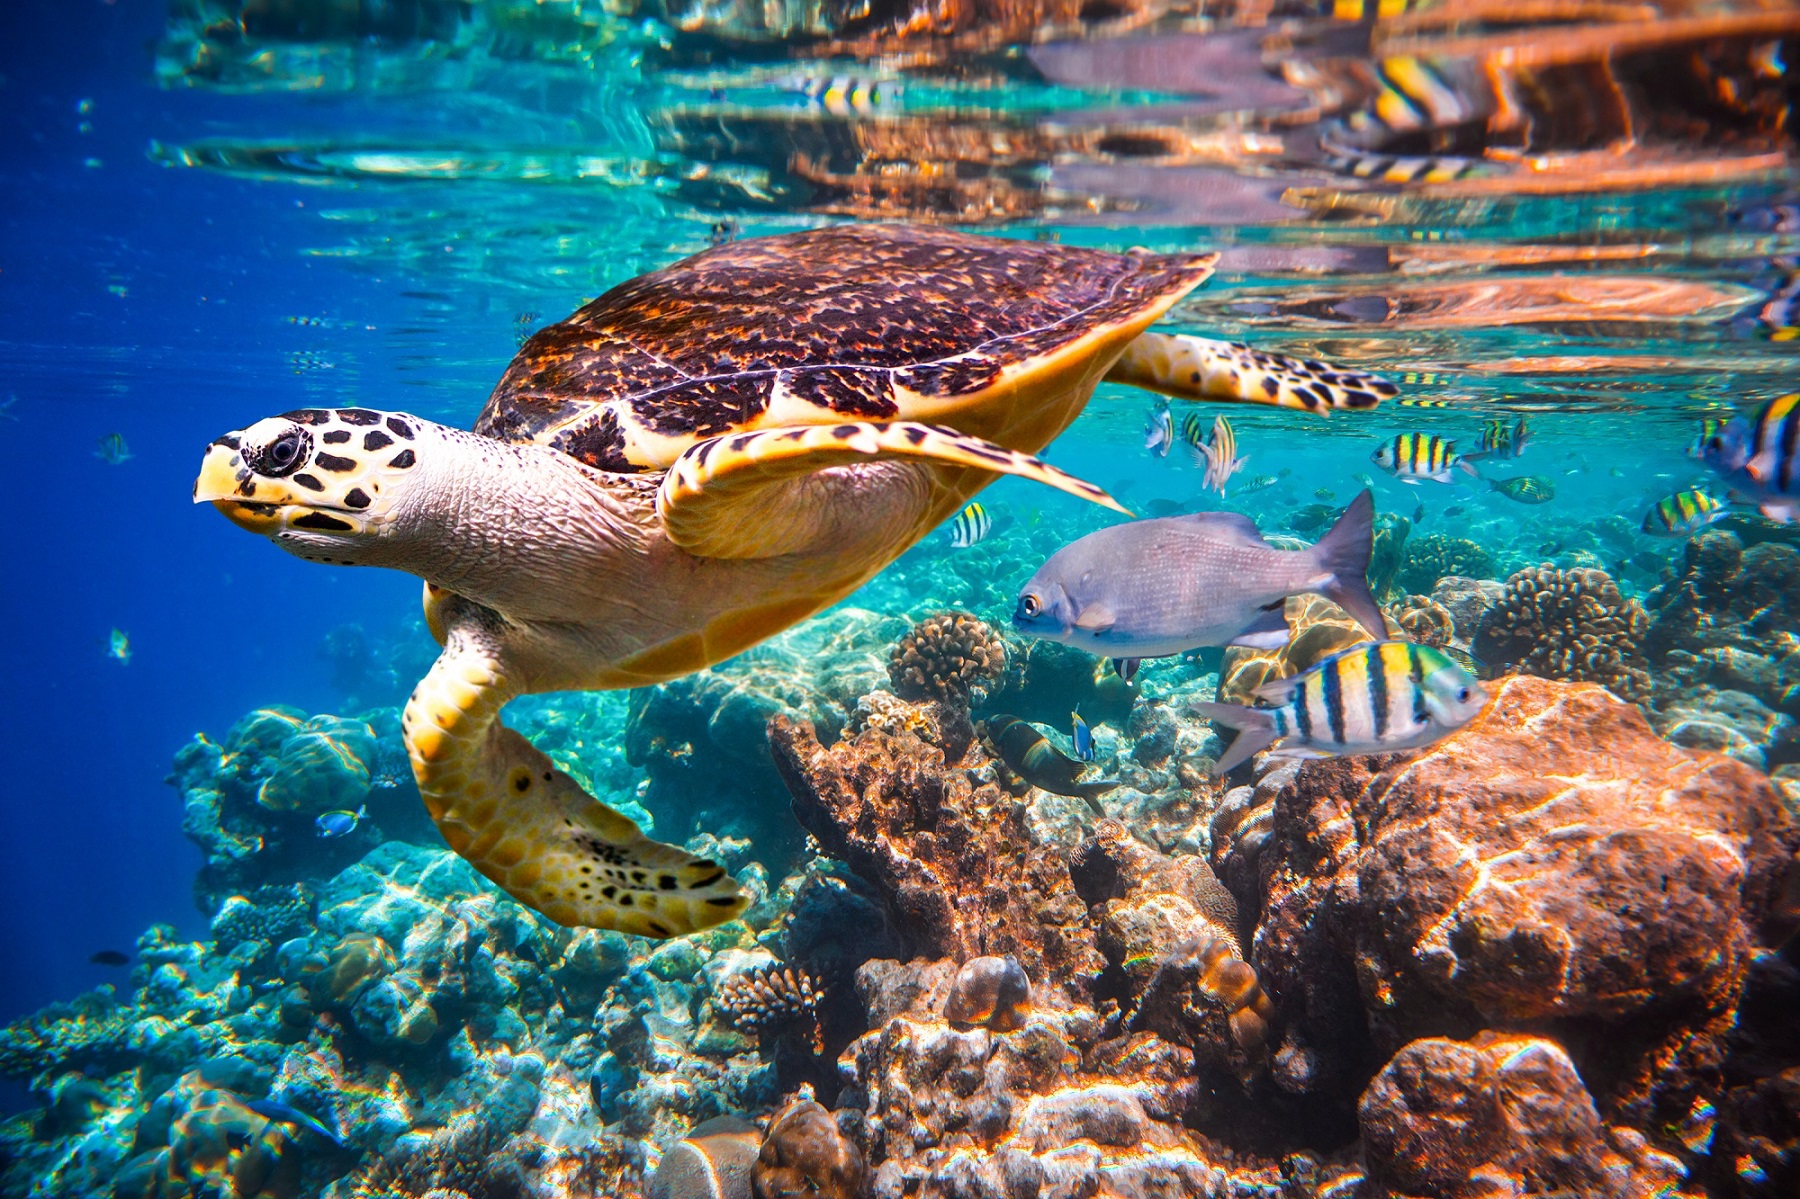 a turtle swimming by a reef